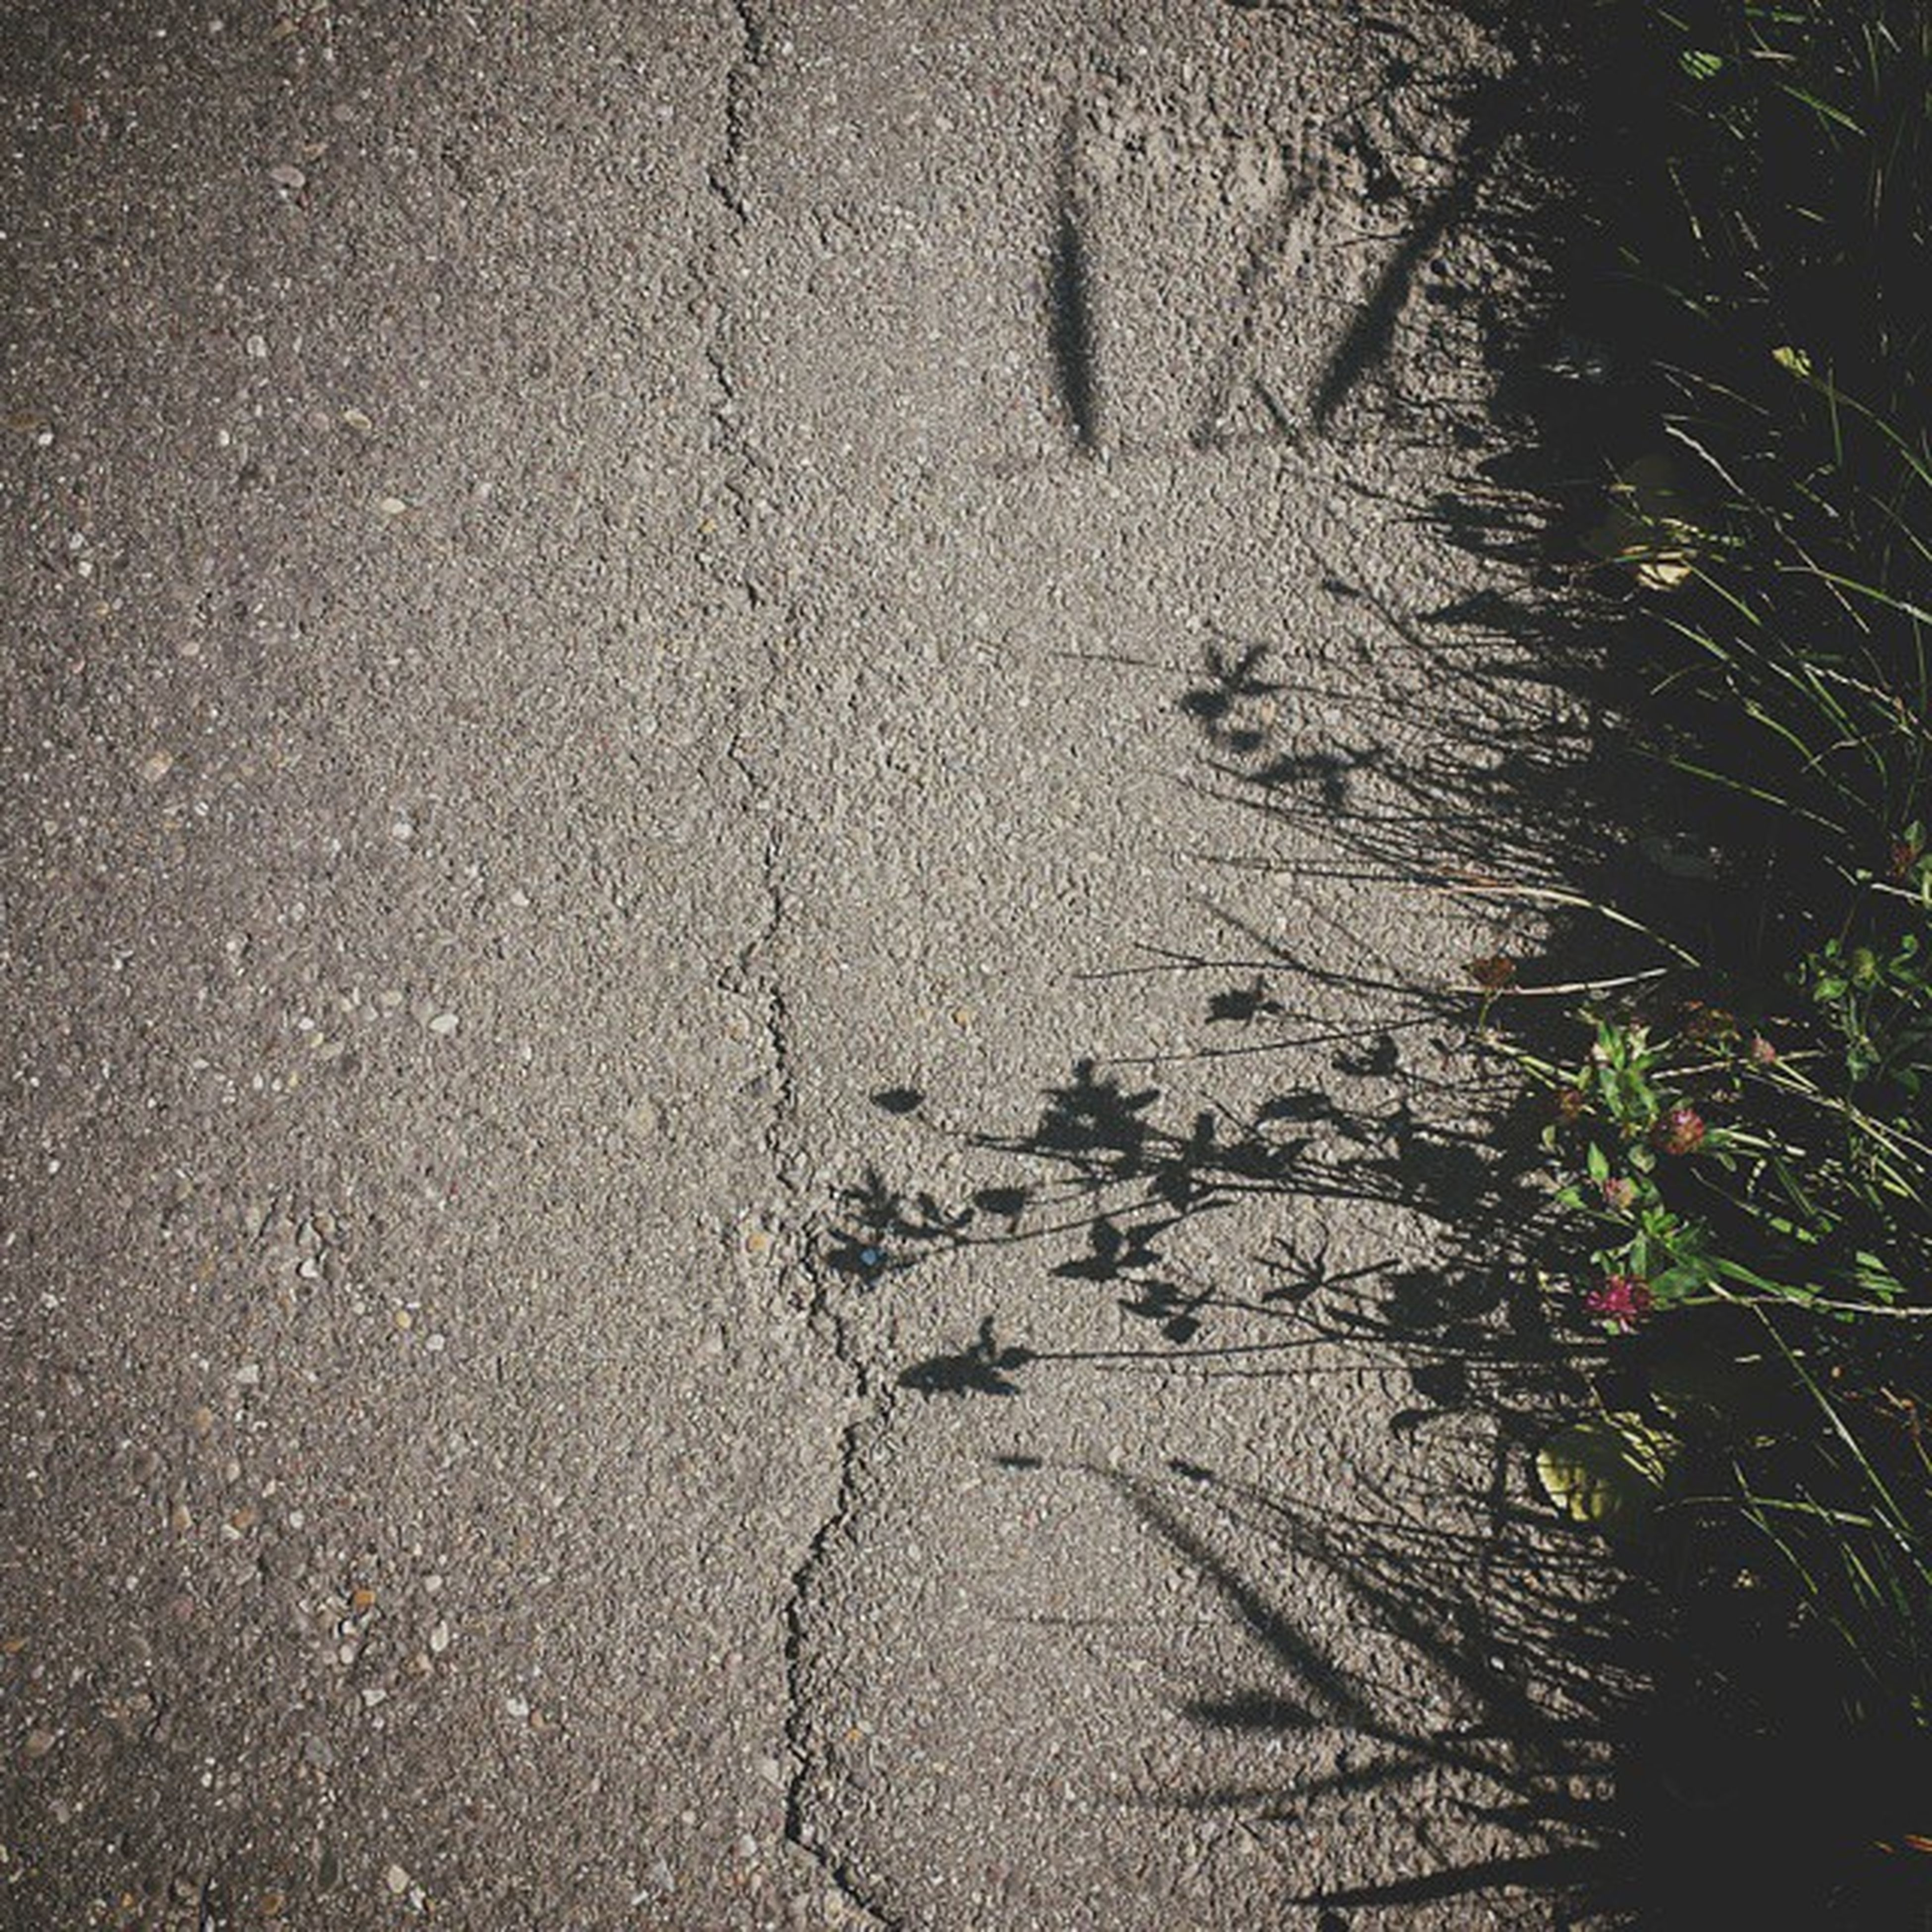 wet, street, water, high angle view, road, nature, sand, asphalt, puddle, outdoors, beach, no people, tranquility, day, sunlight, rain, reflection, plant, growth, shore